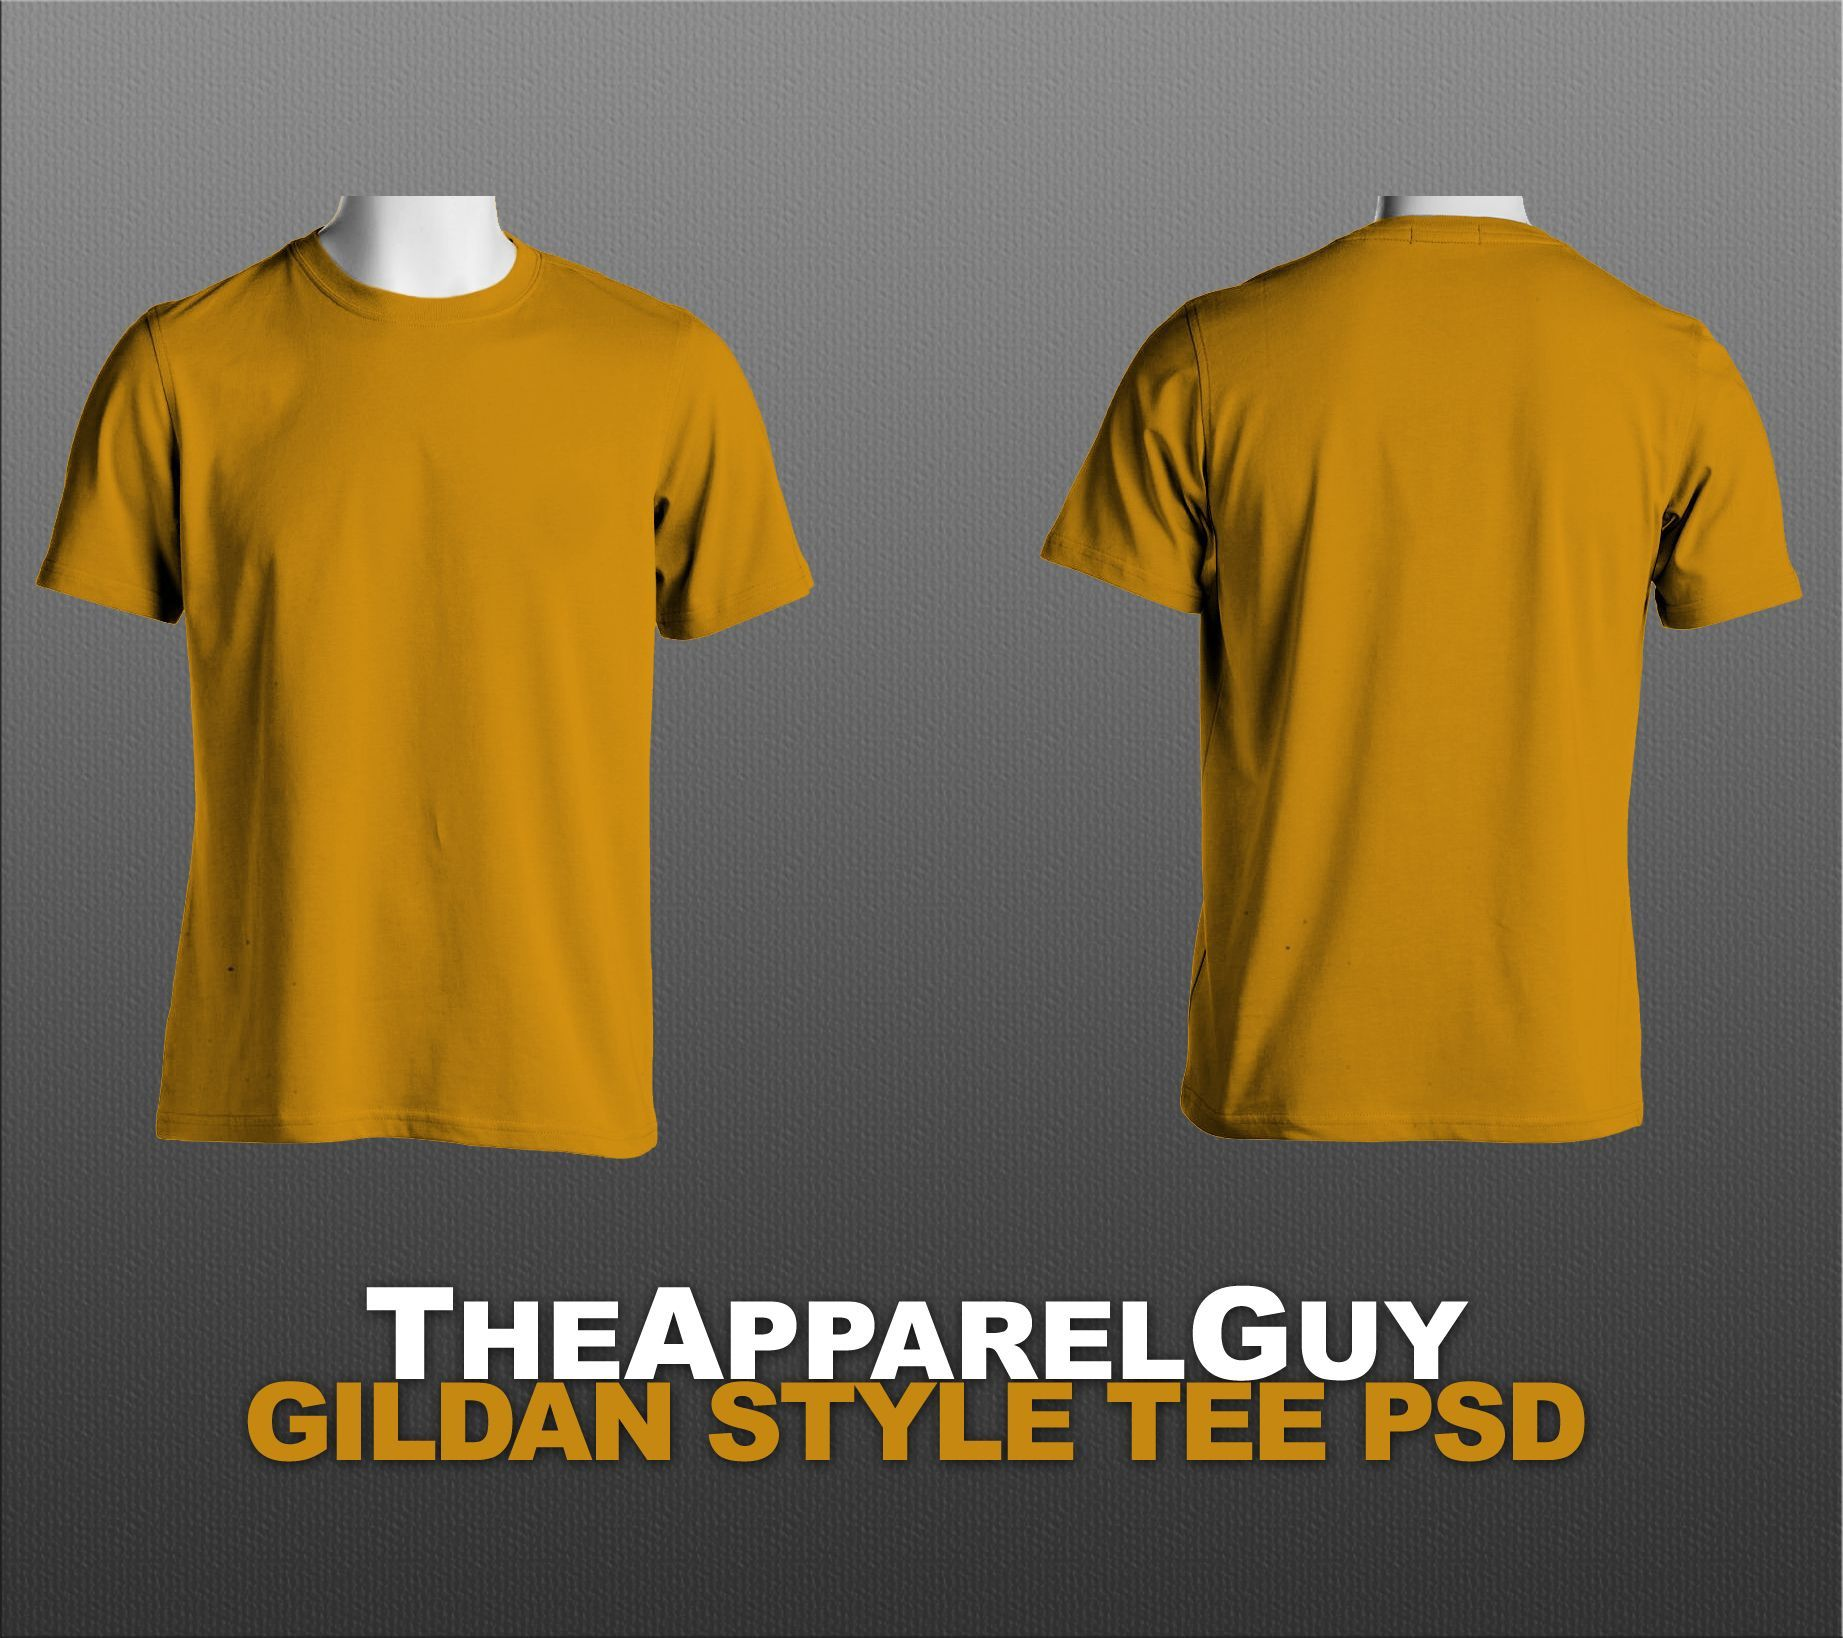 003 Breathtaking T Shirt Design Template Psd Picture  Blank T-shirt V Neck Photoshop CollarFull